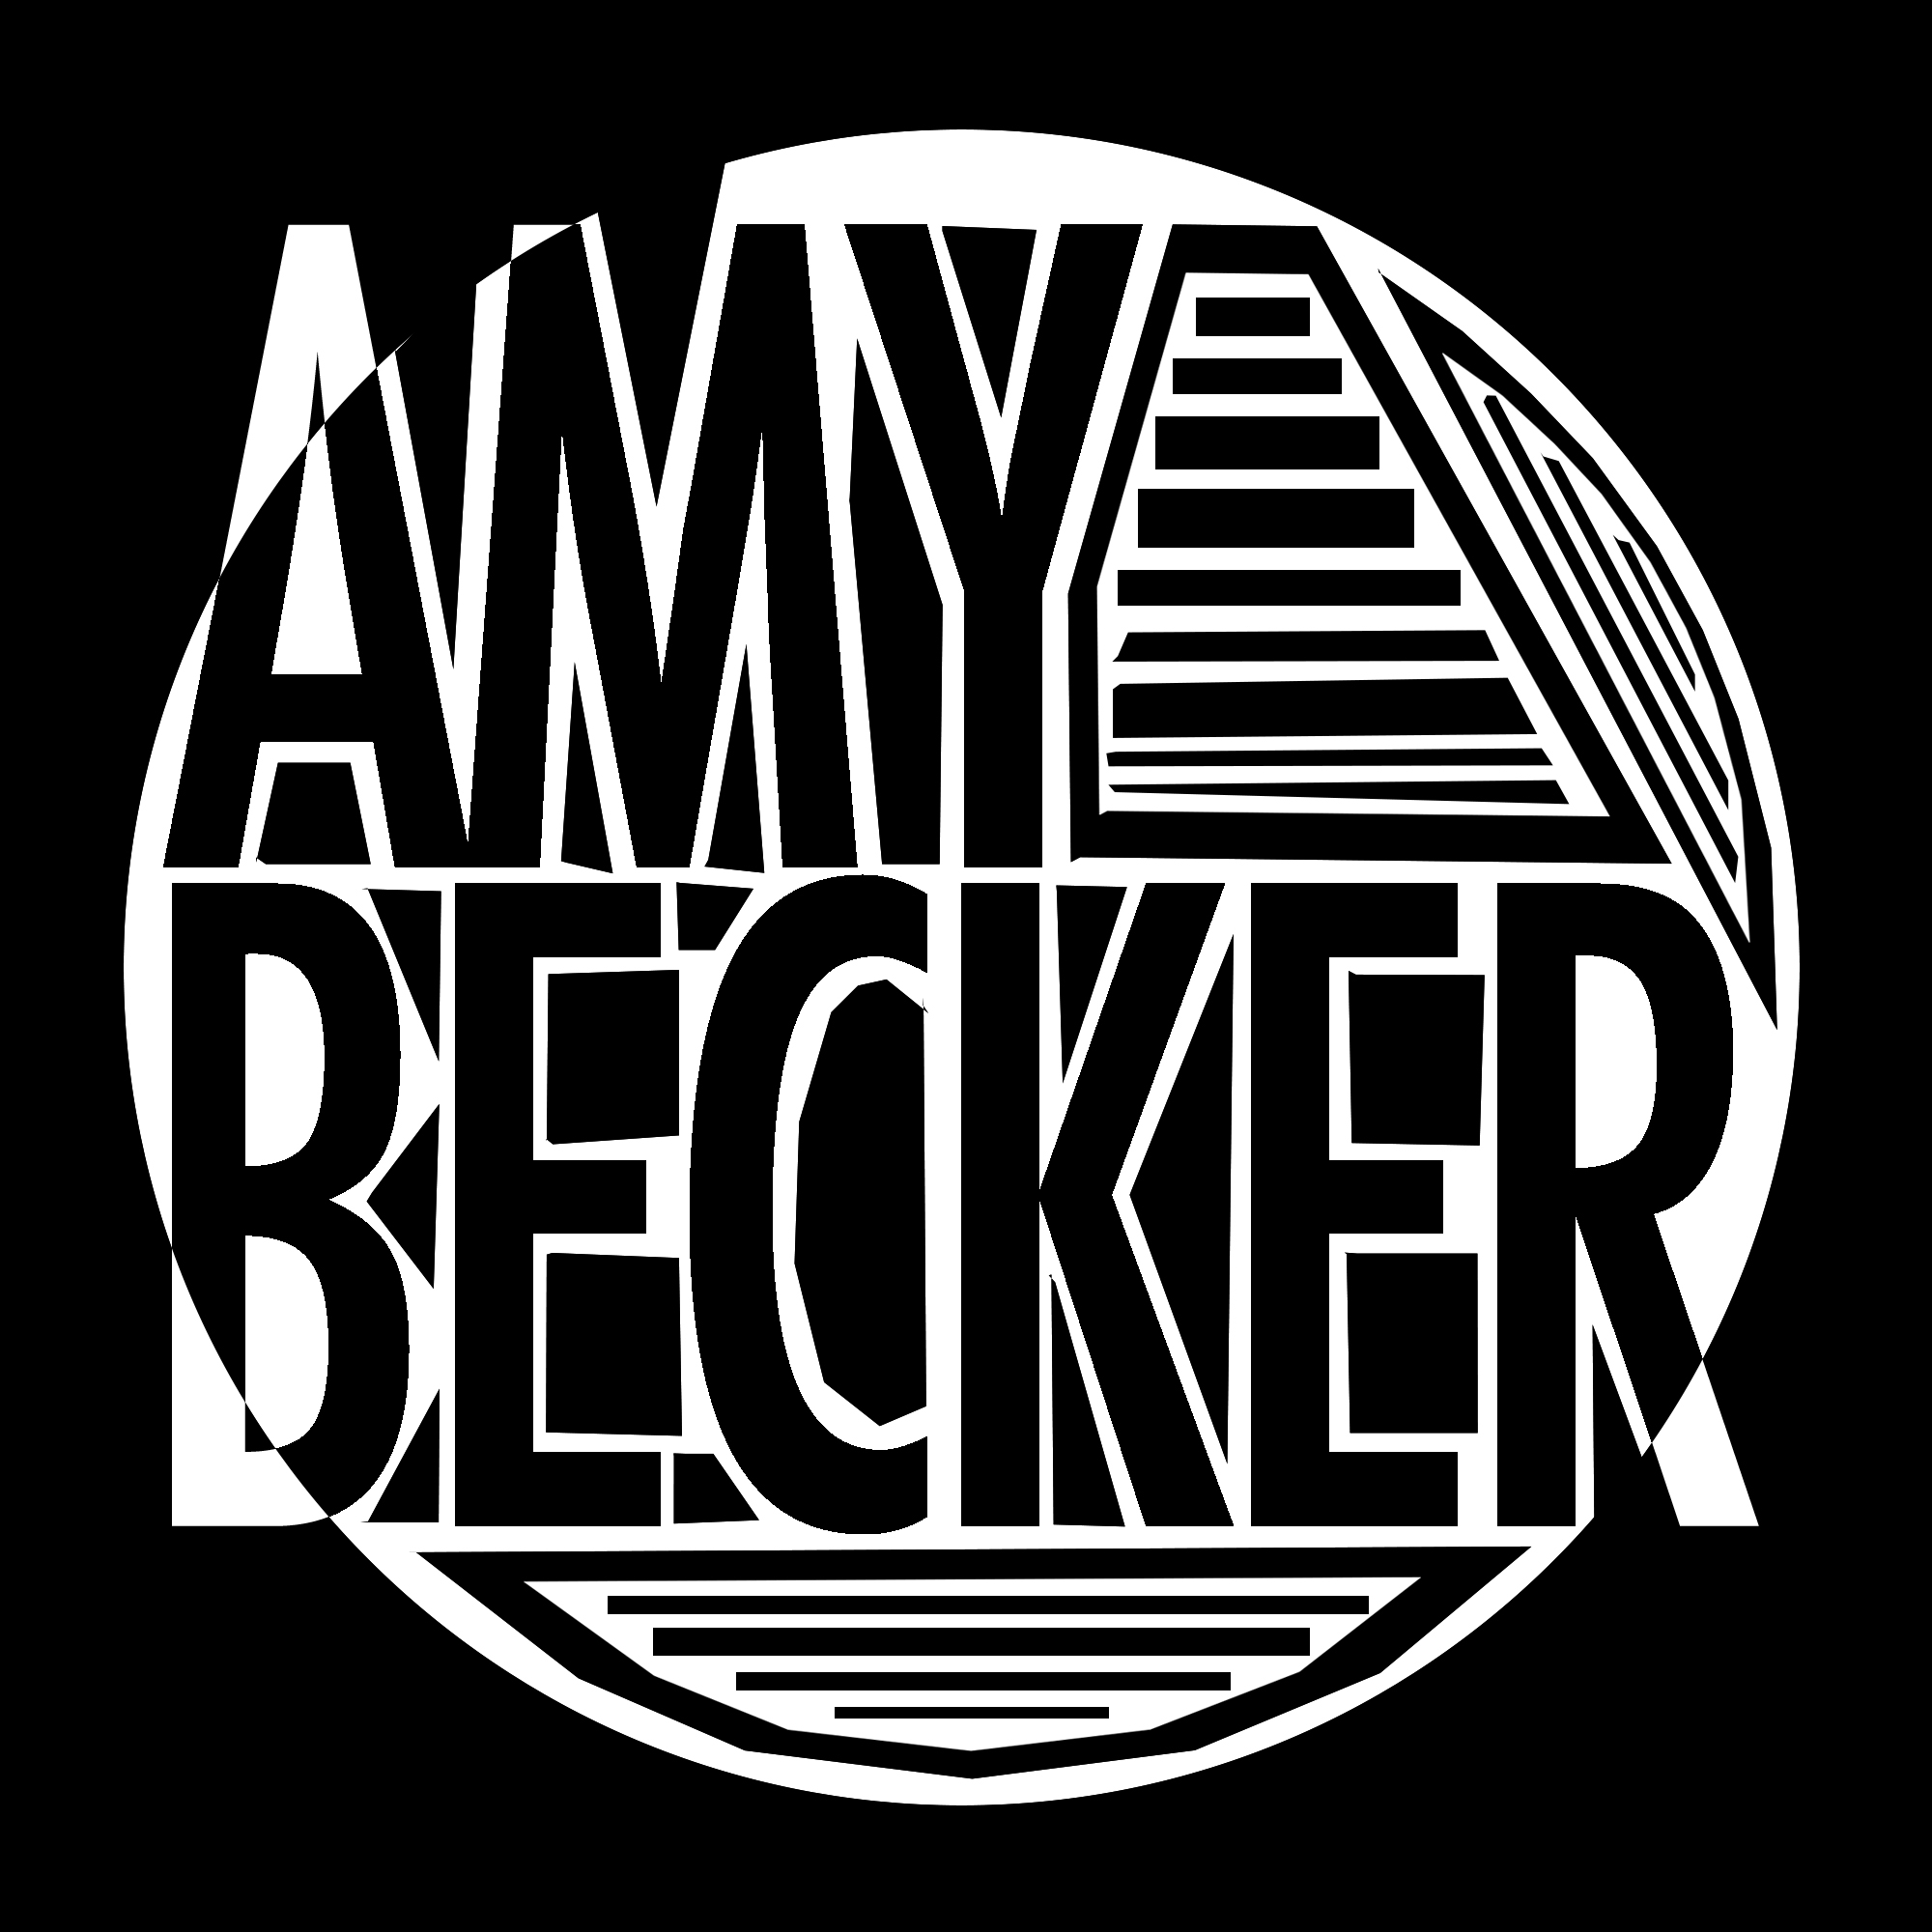 Amy Becker DJ